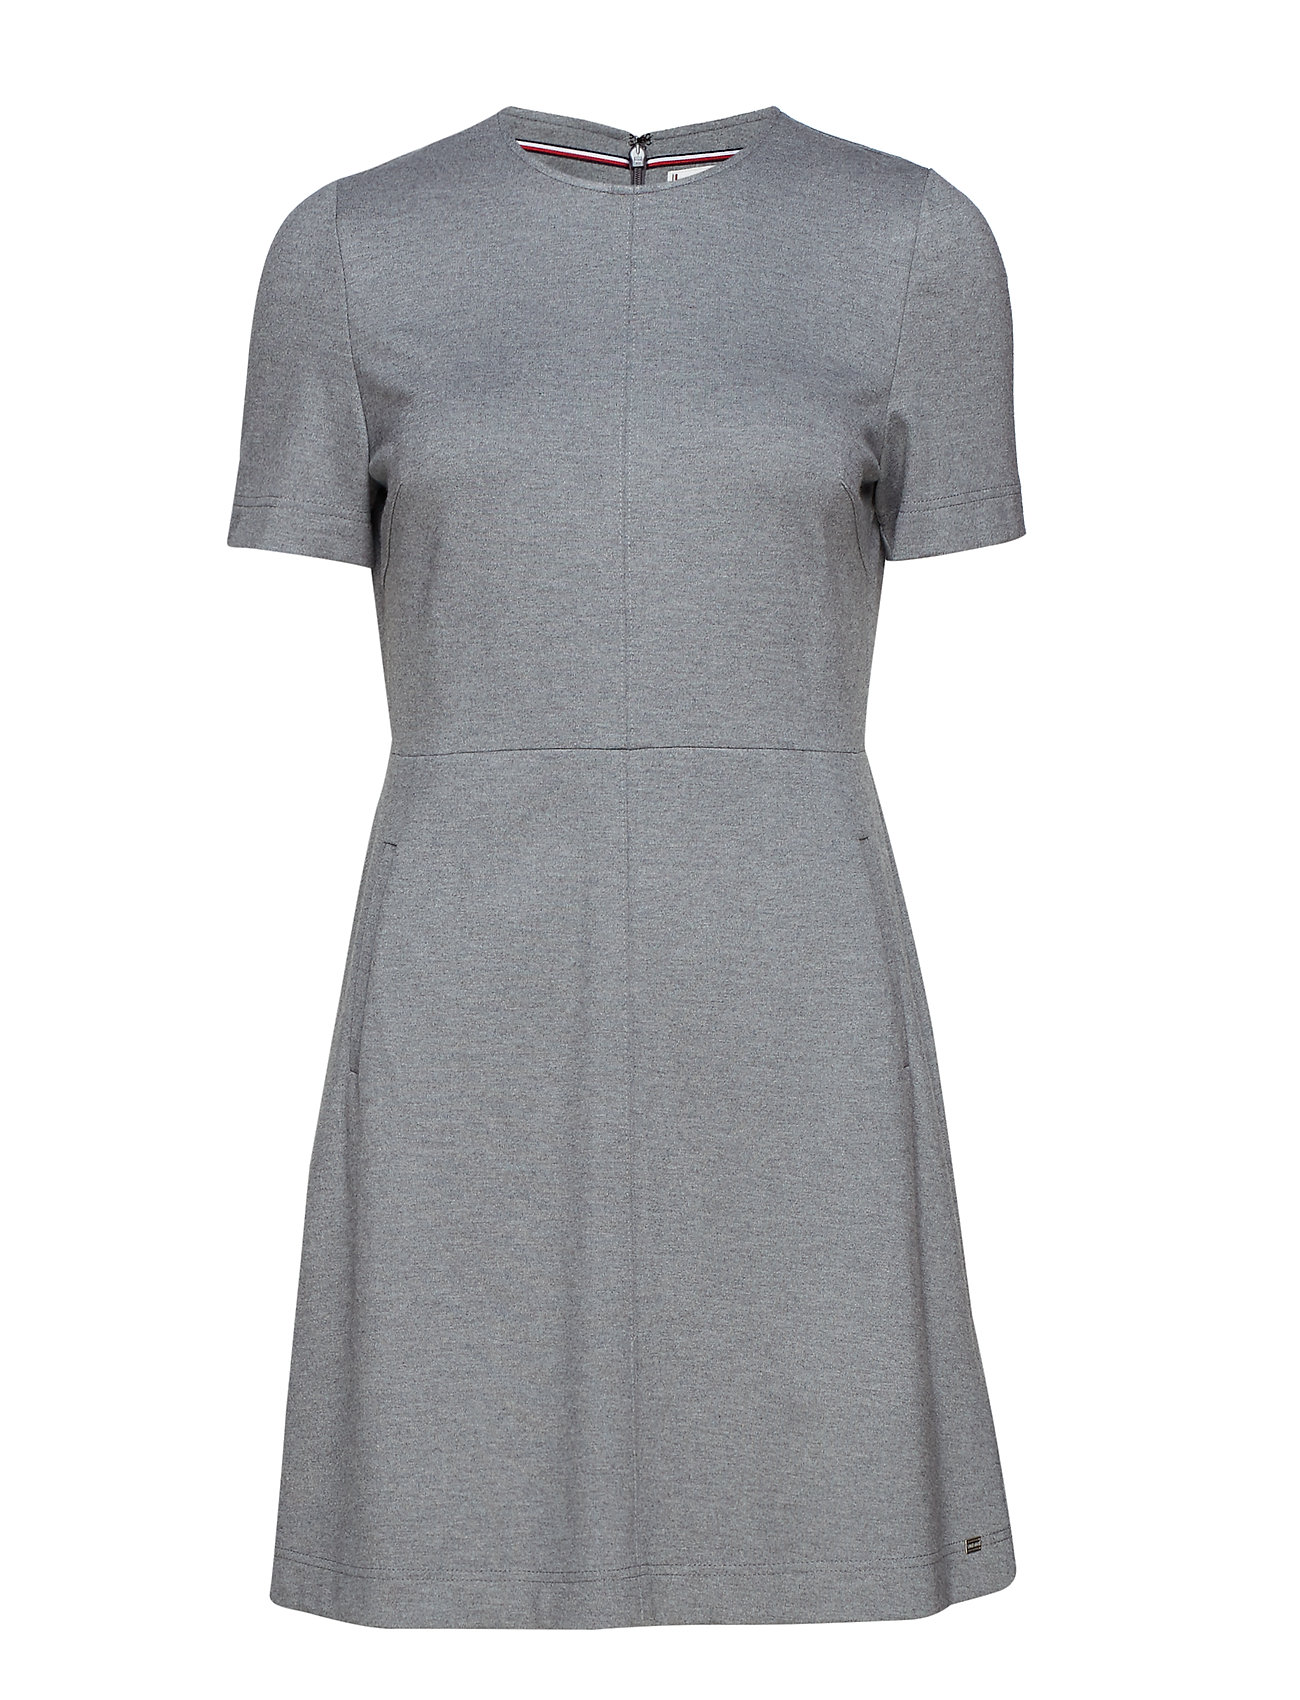 Tommy Hilfiger ARIELLE DRESS - MEDIUM GREY HTR